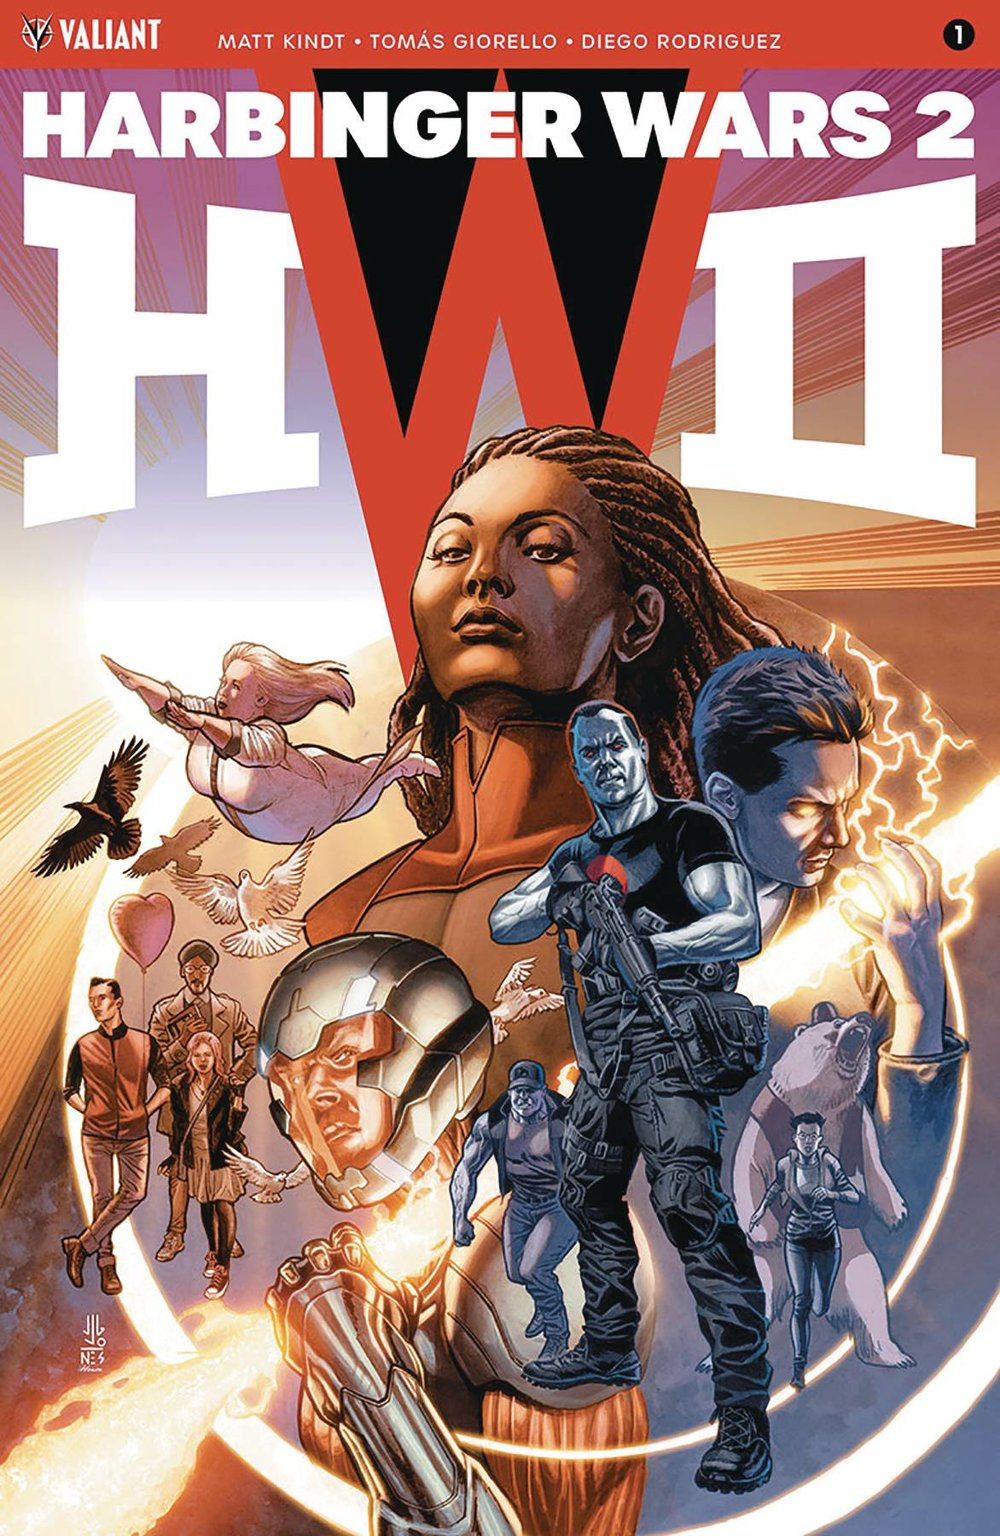 HARBINGER WARS 2 1 of 4 CVR A JONES.jpg